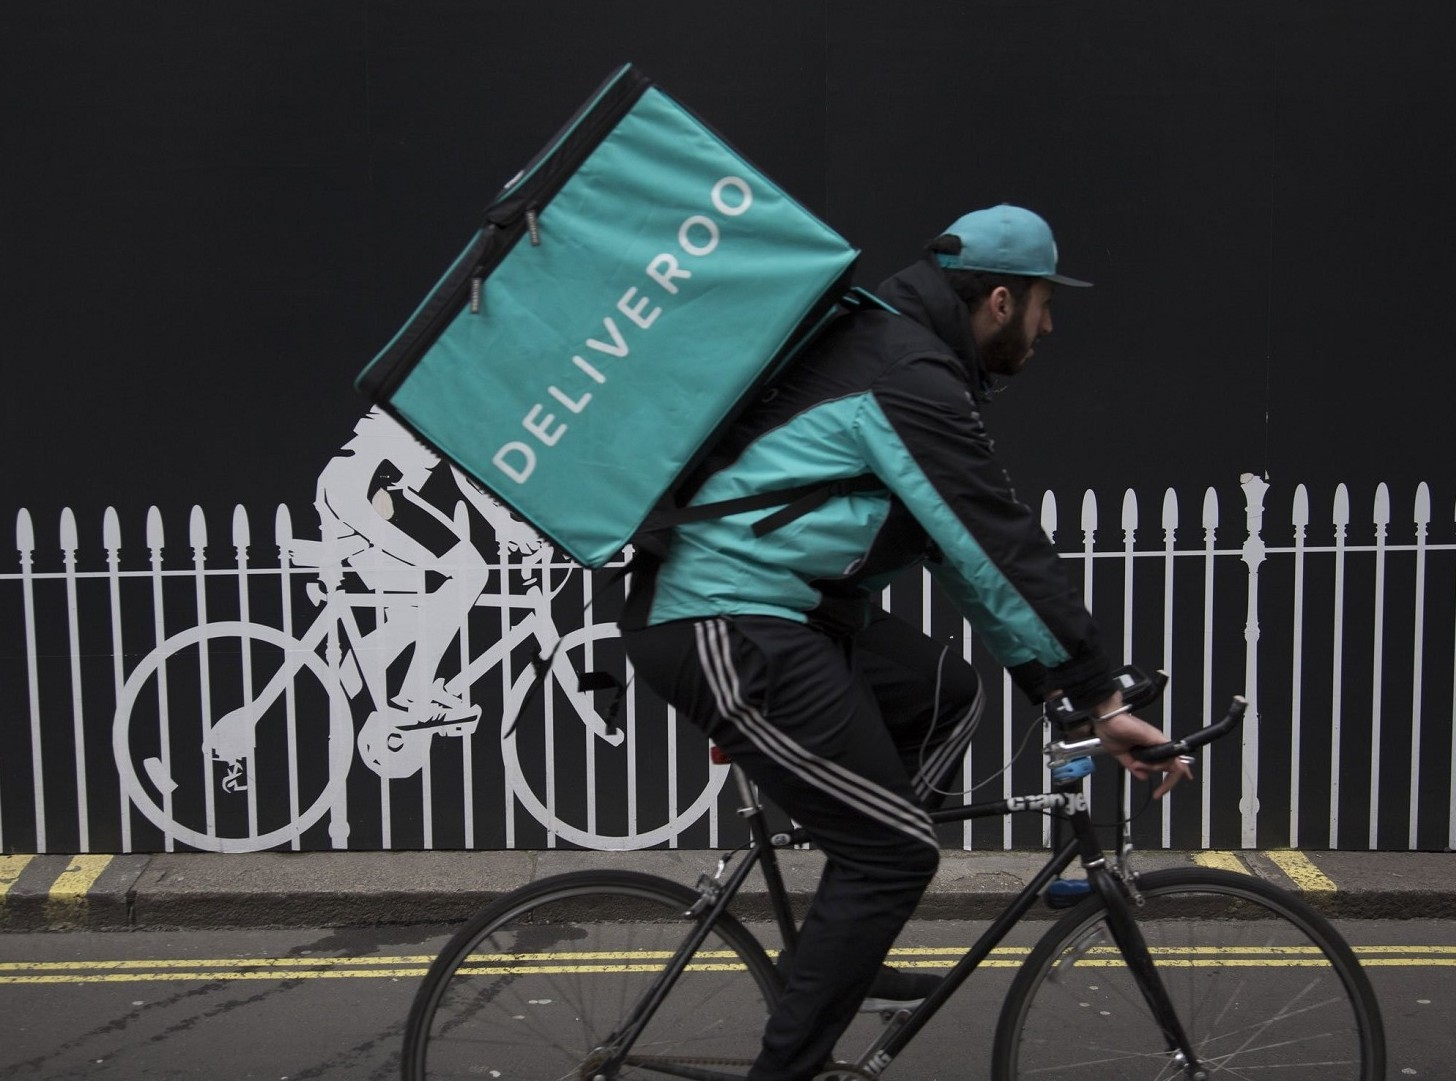 Deliveroo, lavoratori in protesta no al